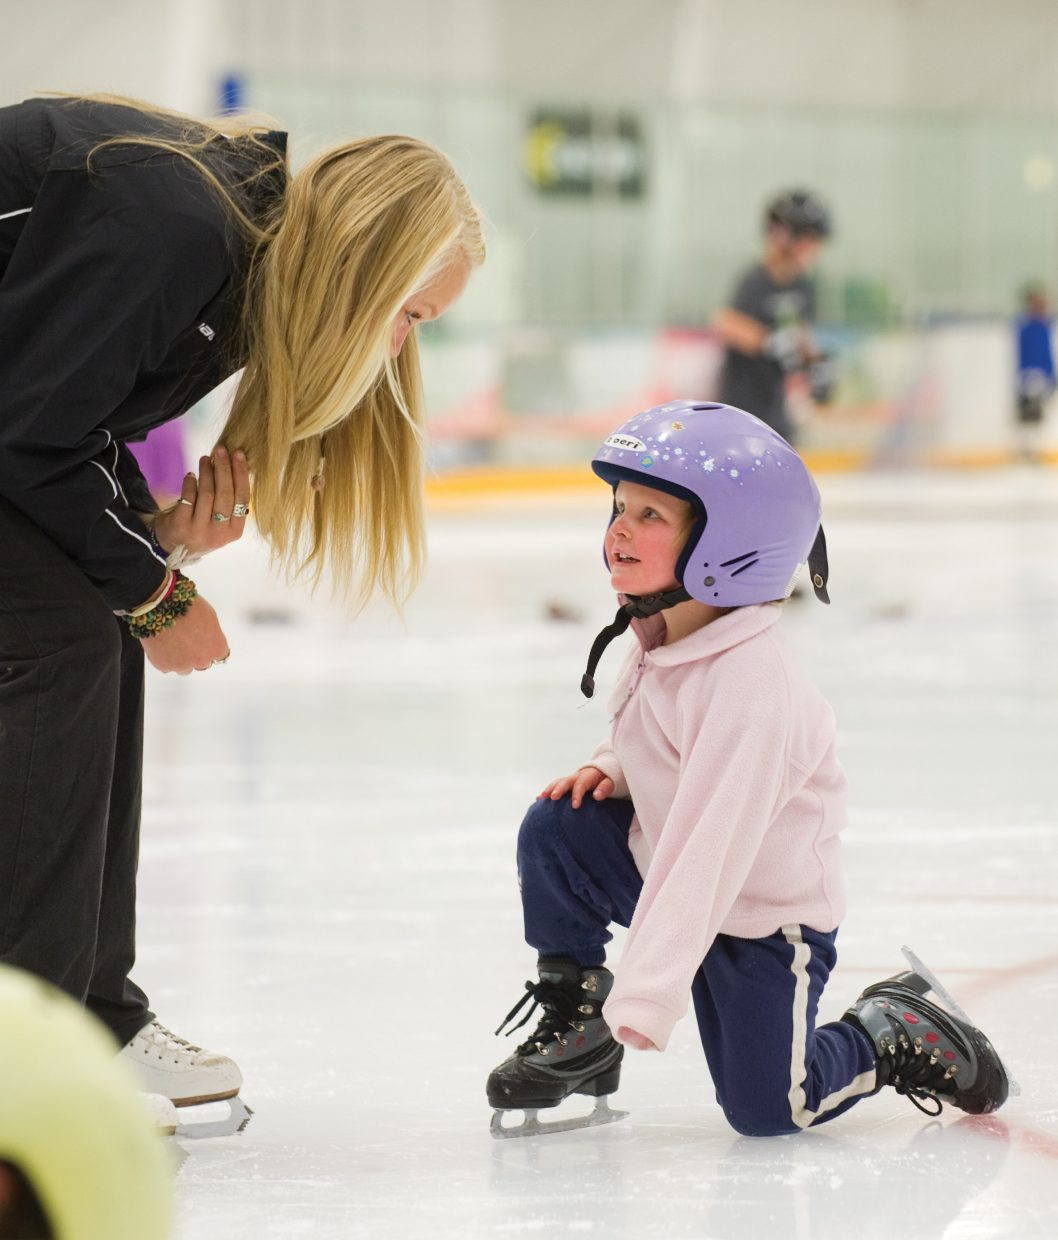 Shea Shorland listens to her instructor Samantha Cretney on Wednesday during the Learn to Skate program at Howelsen Ice Arena.